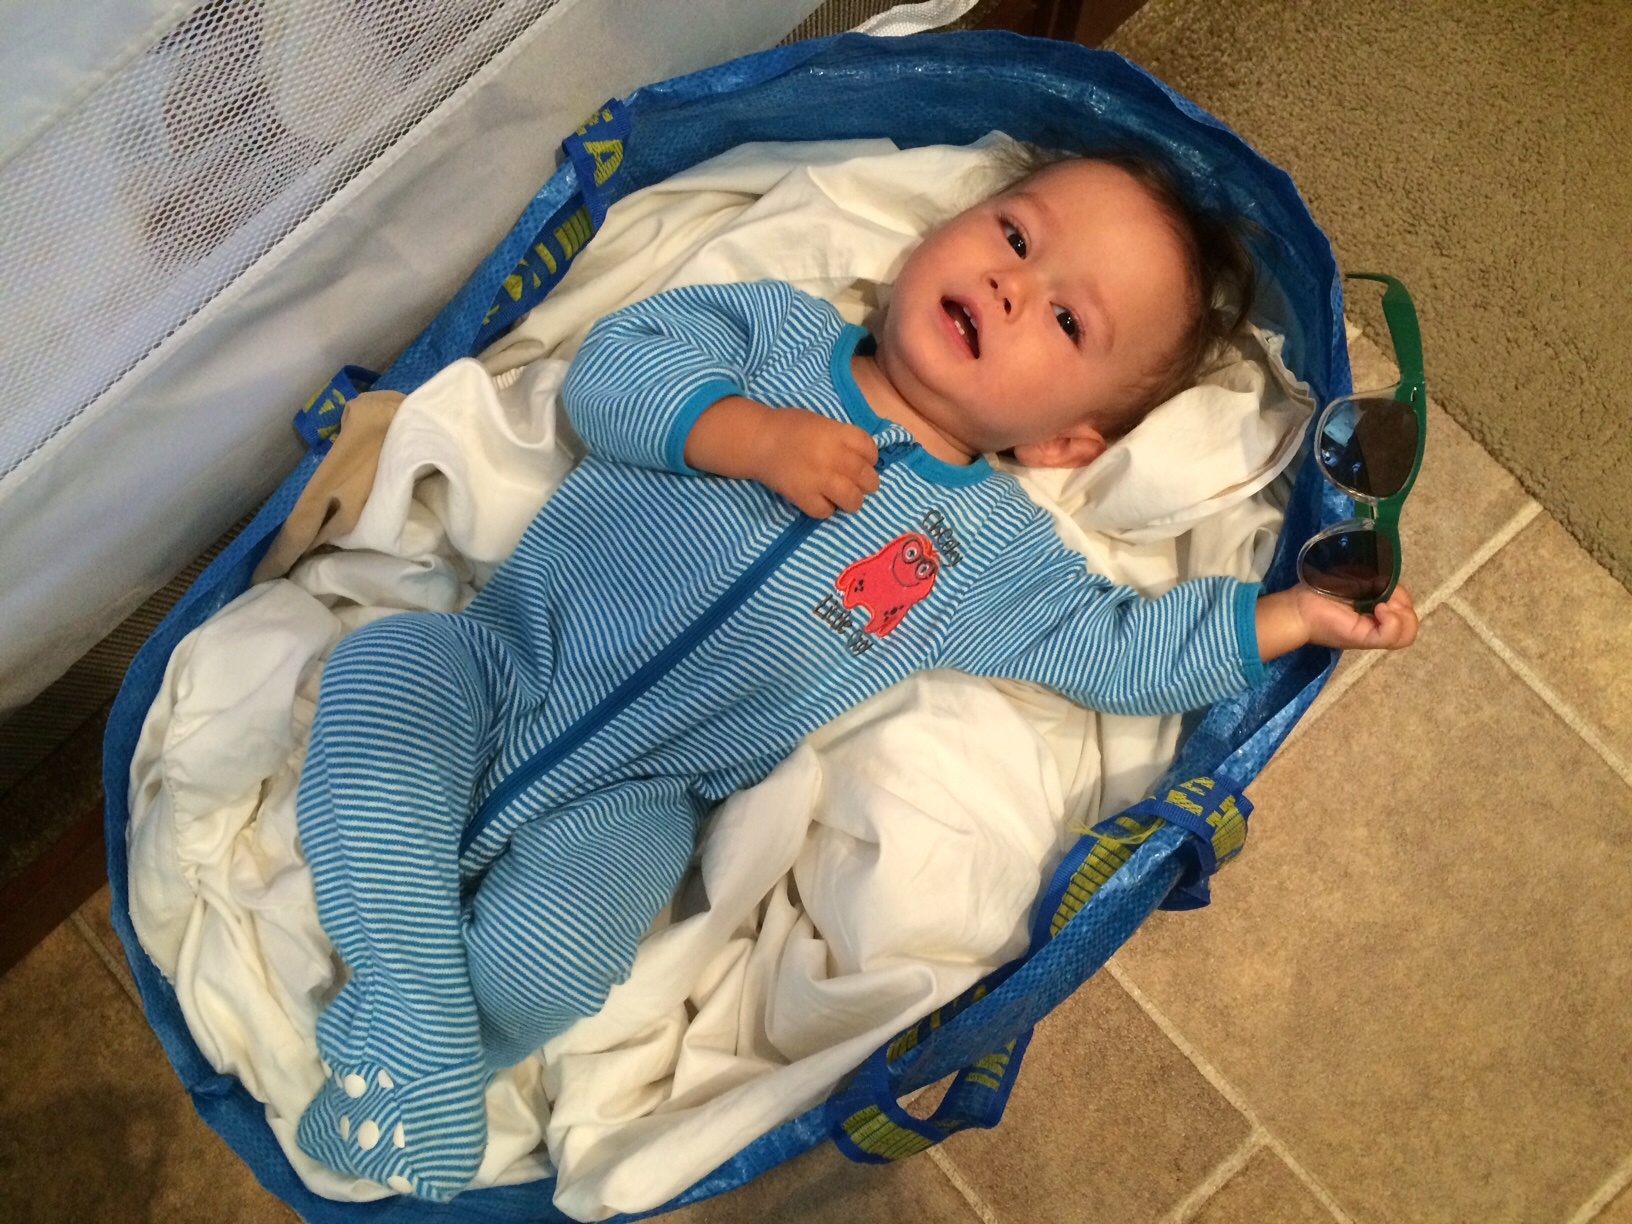 Baby boy o in laundry basket